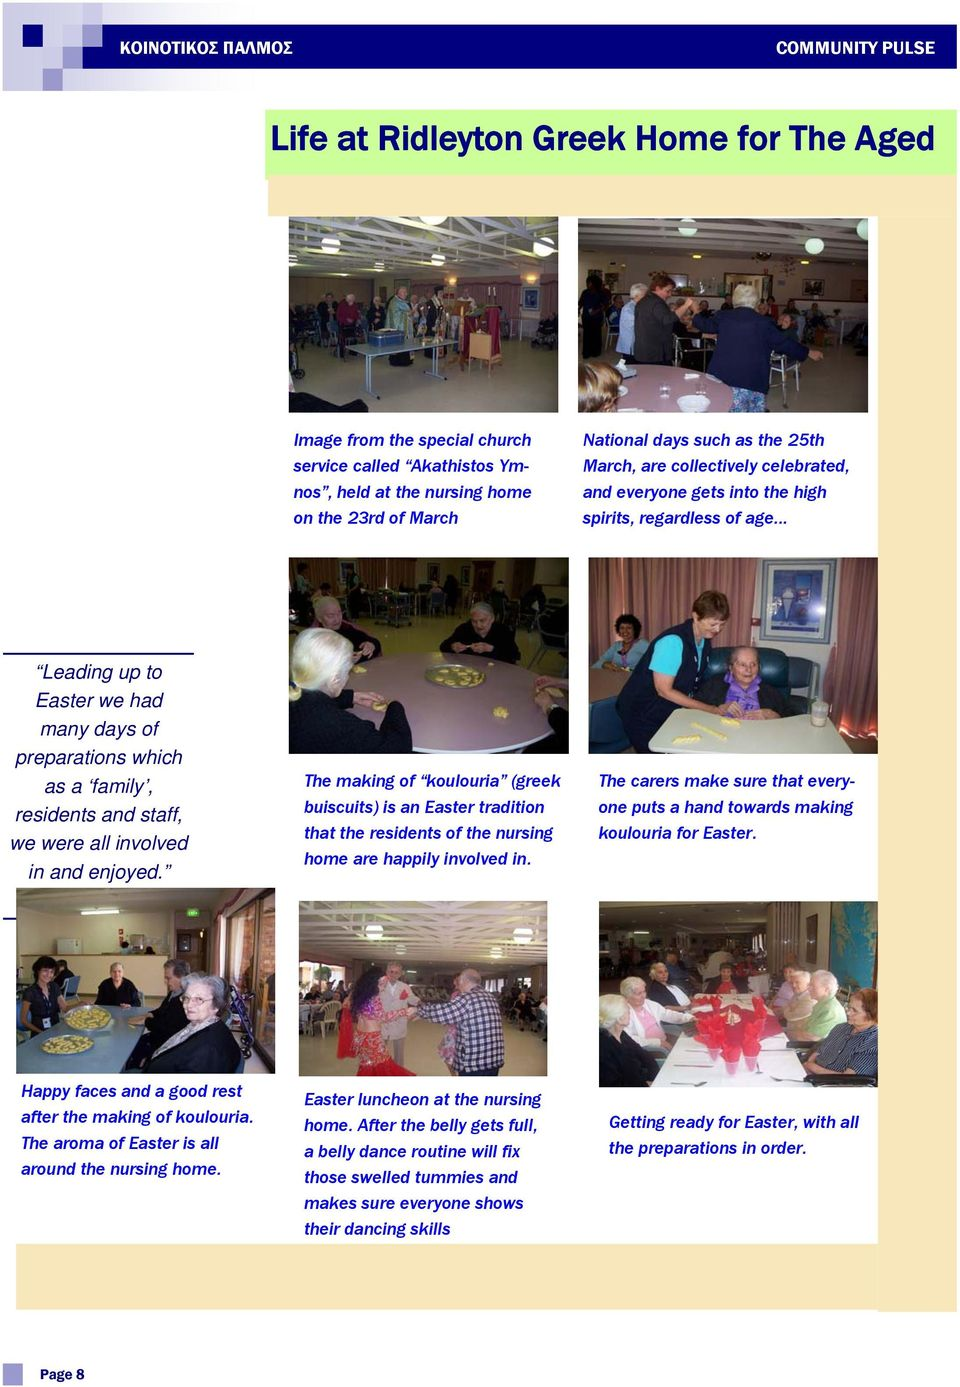 .. Leading up to Easter we had many days of preparations which as a family, residents and staff, we were all involved in and enjoyed.